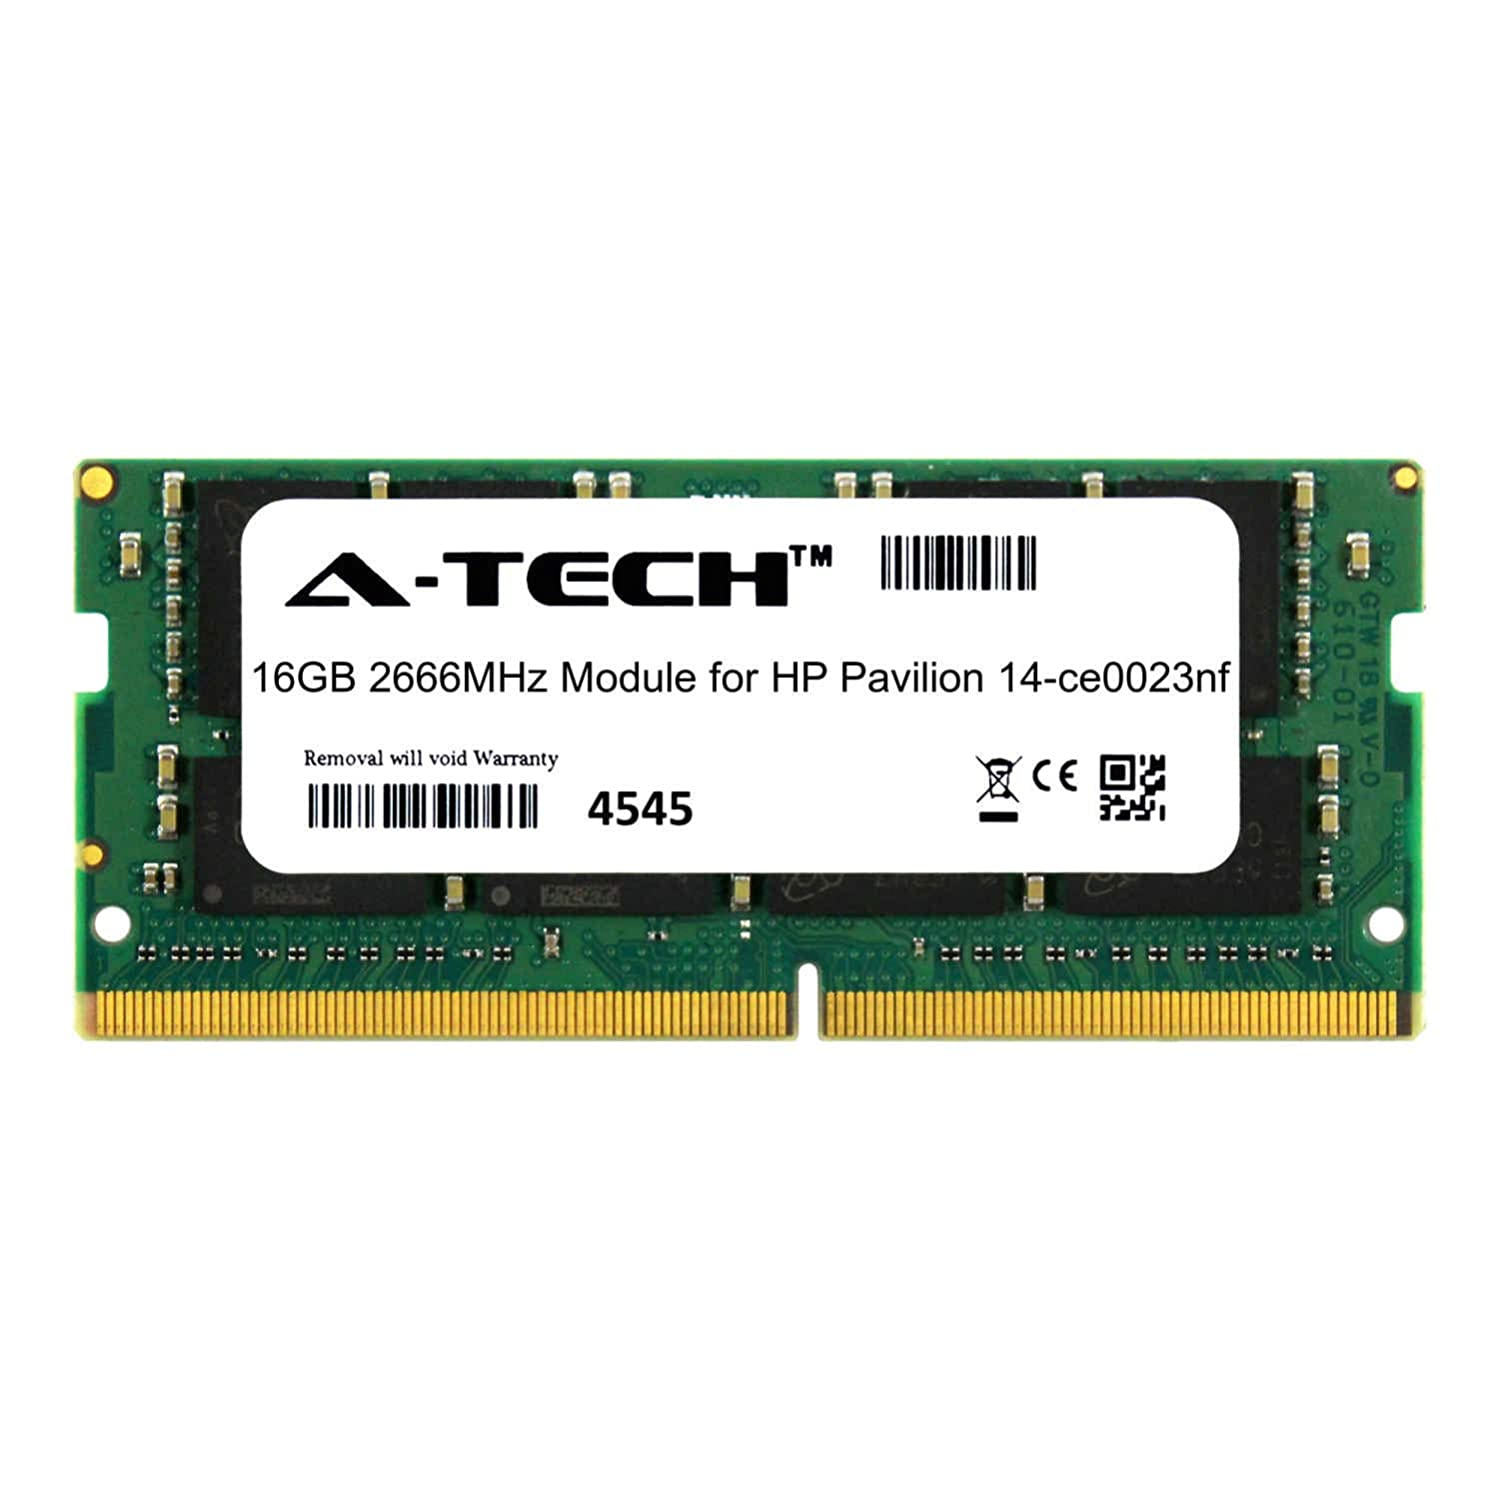 A-Tech 16GB Module for HP Pavilion 14-ce0023nf Laptop & Notebook Compatible DDR4 2666Mhz Memory Ram (ATMS307971A25832X1)